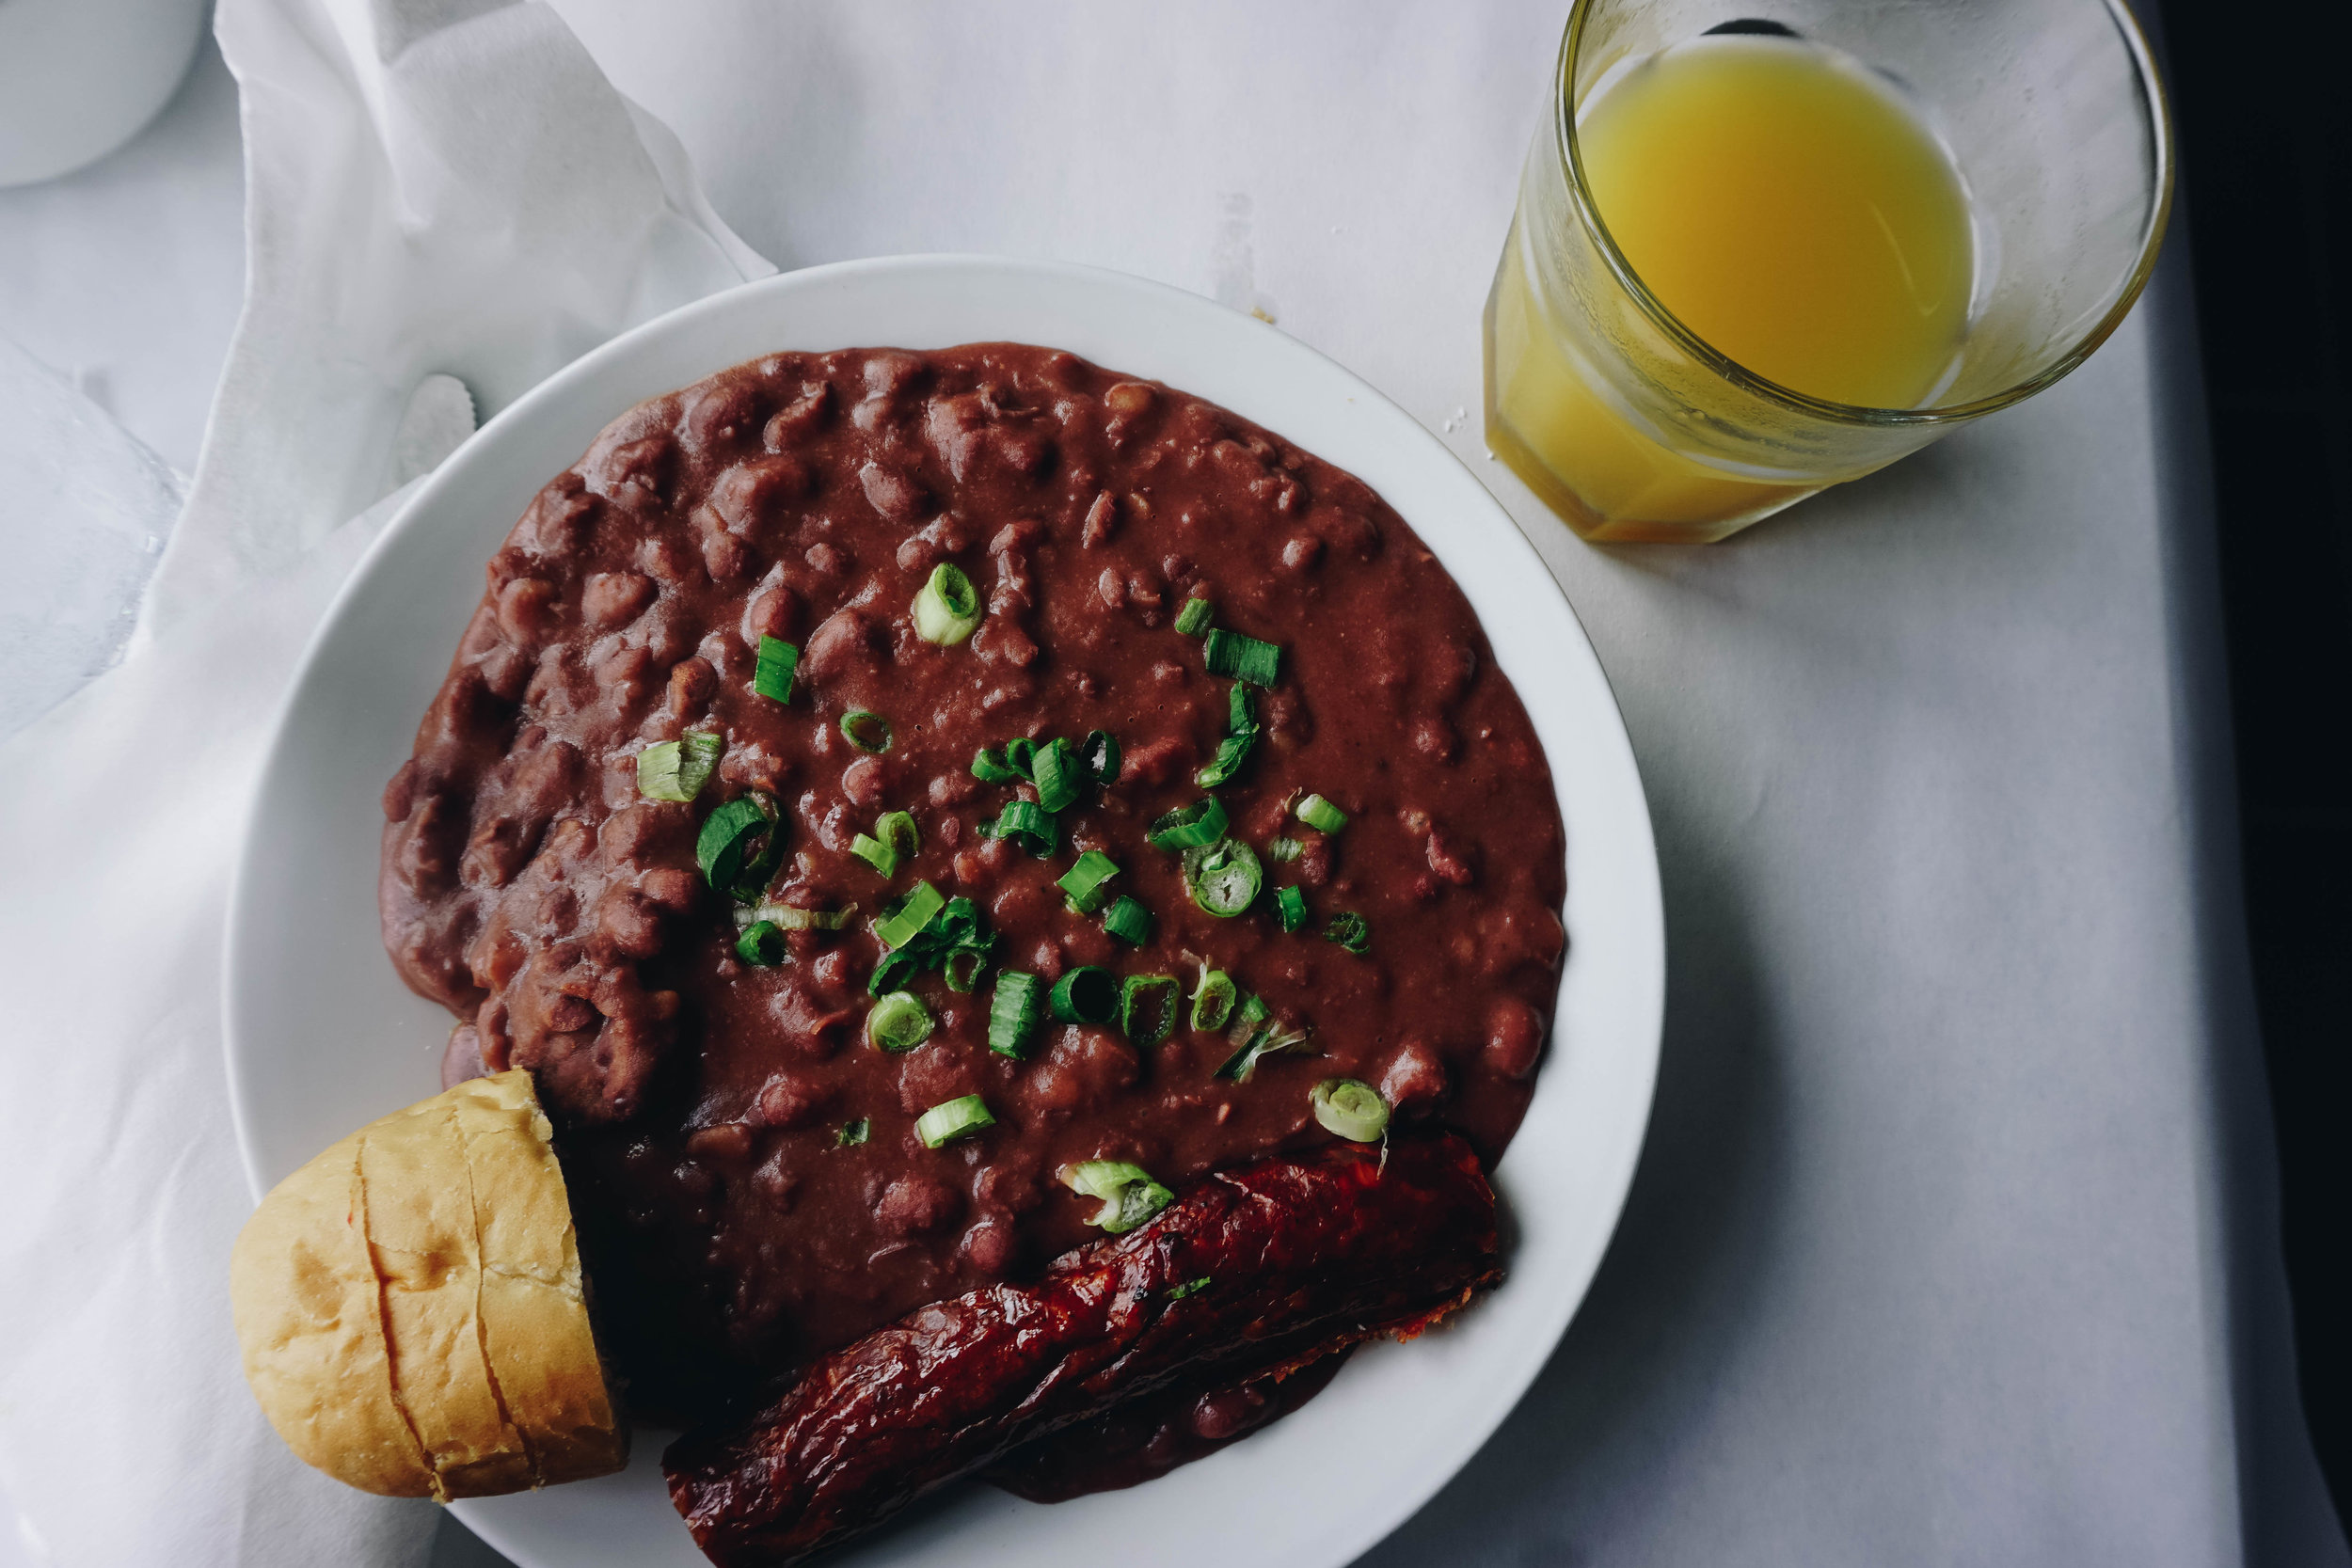 Huey's red beans and rice with Andouille sausage